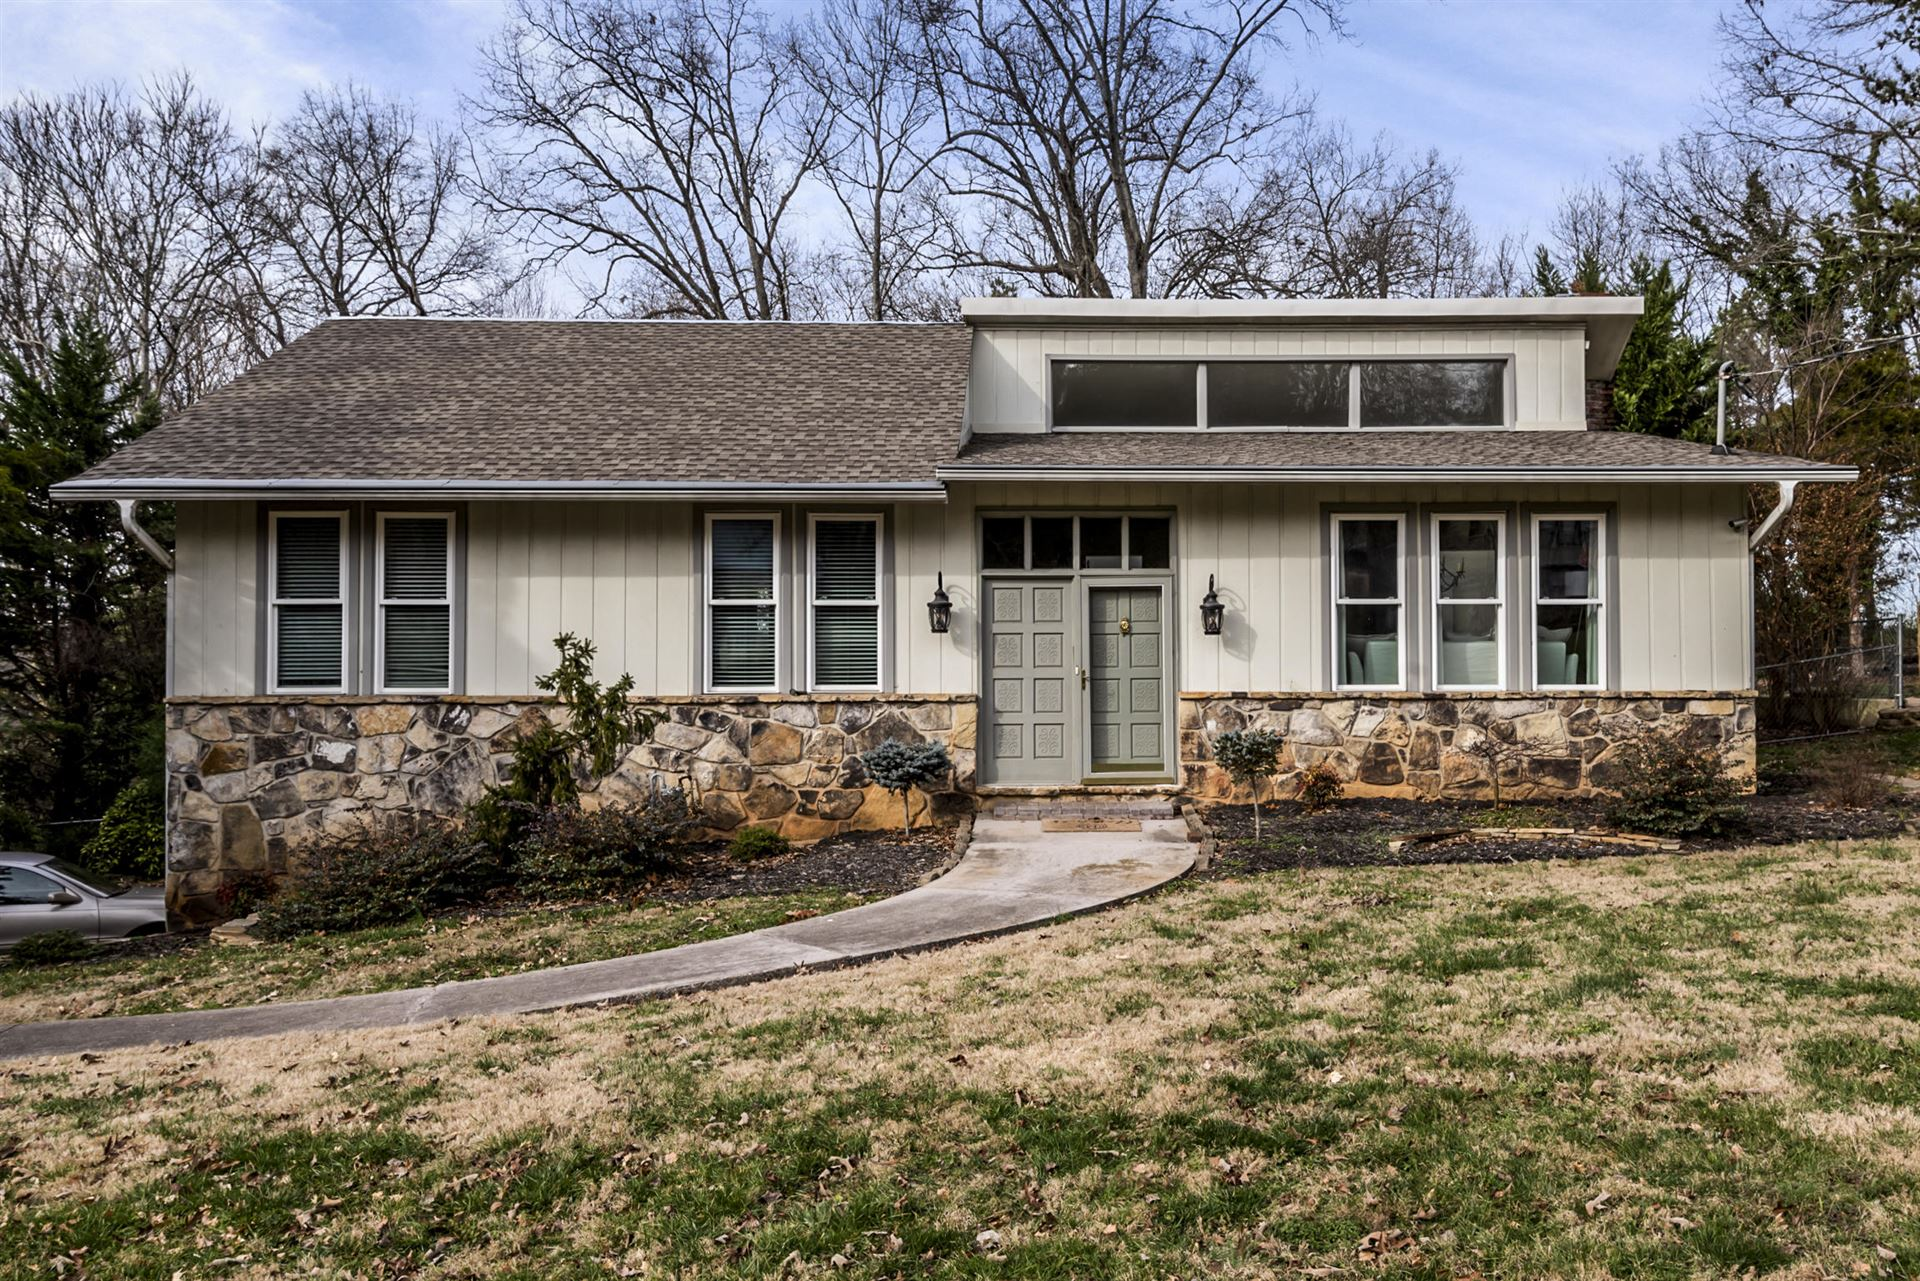 Photo of 5455 Lance Drive, Knoxville, TN 37909 (MLS # 1141009)